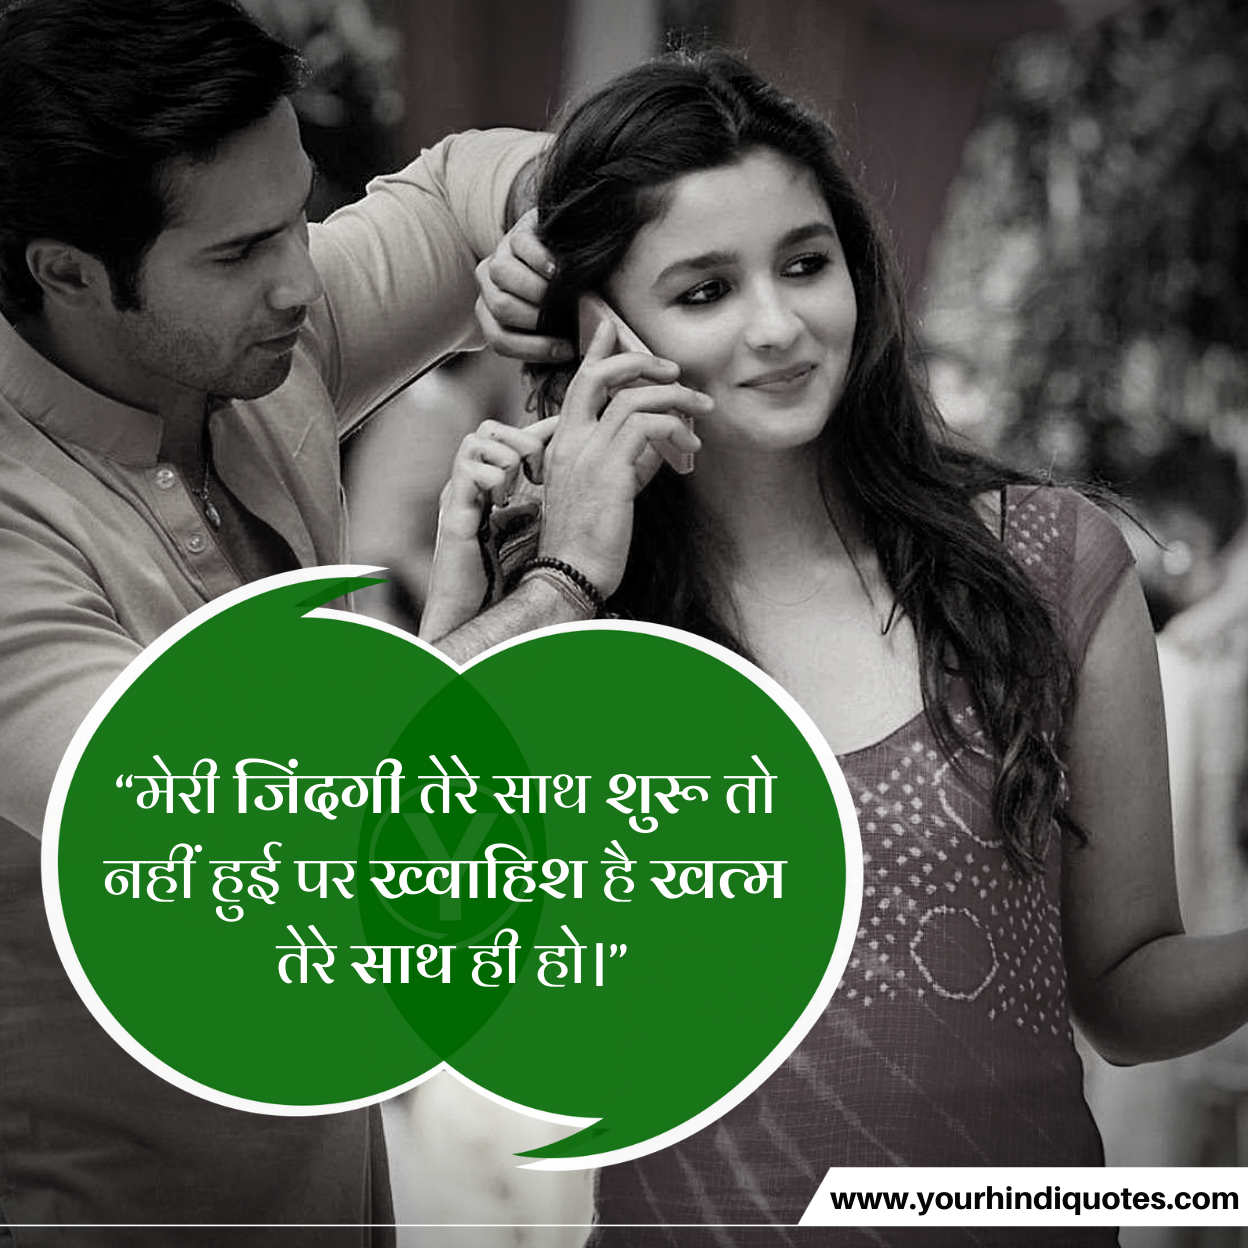 Love WhatsApp Hindi Shayari Pictures